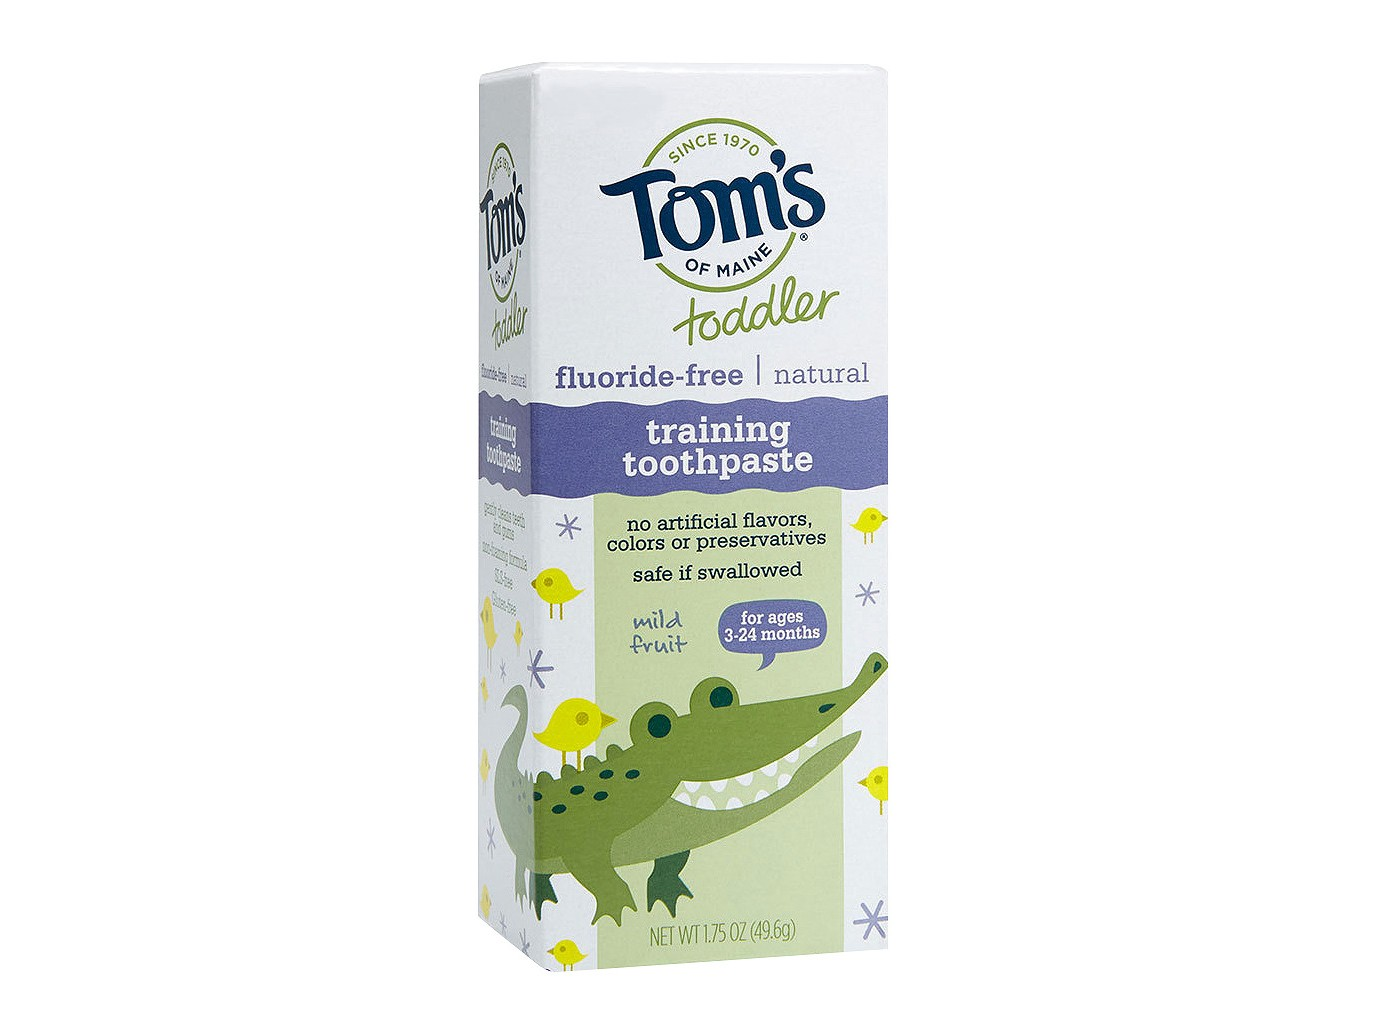 Tom's Training Toothpaste - Natural ingredients + safe if swallowed. Get it HERE.